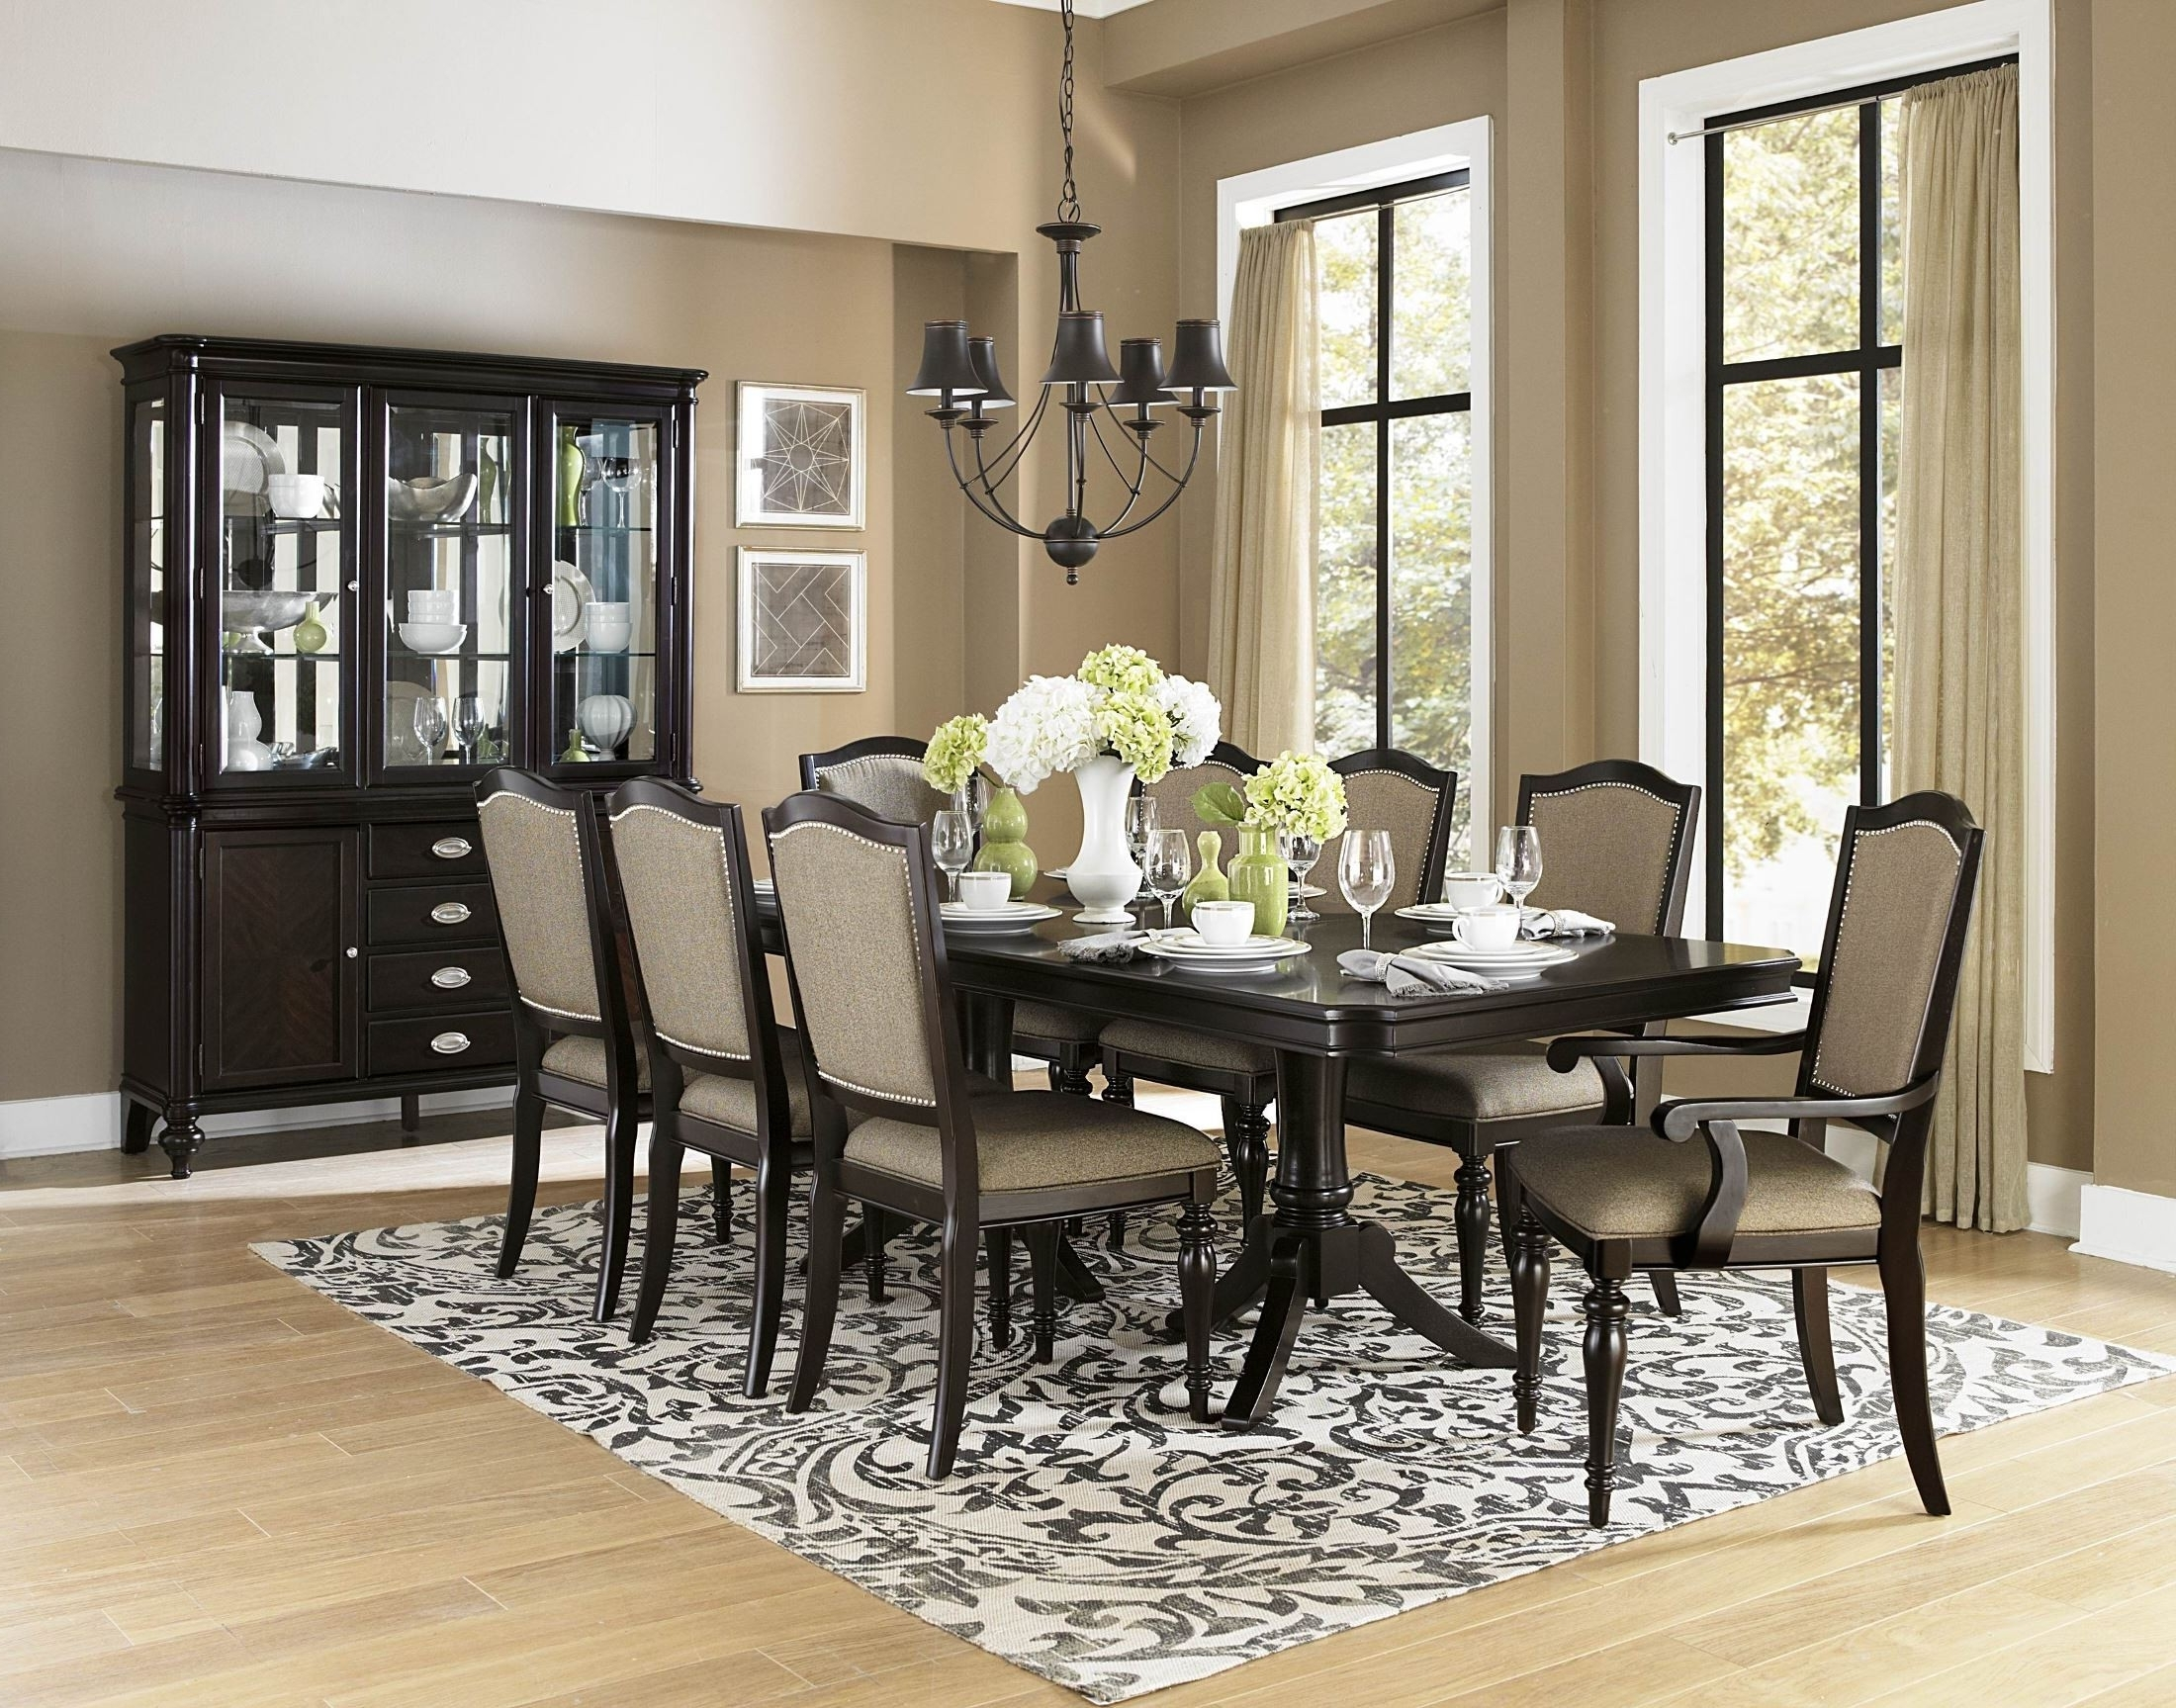 Best And Newest Homelegance Marston Rectangular Extendable Dining Room Set – Marston Inside Craftsman 7 Piece Rectangle Extension Dining Sets With Arm & Side Chairs (View 4 of 25)